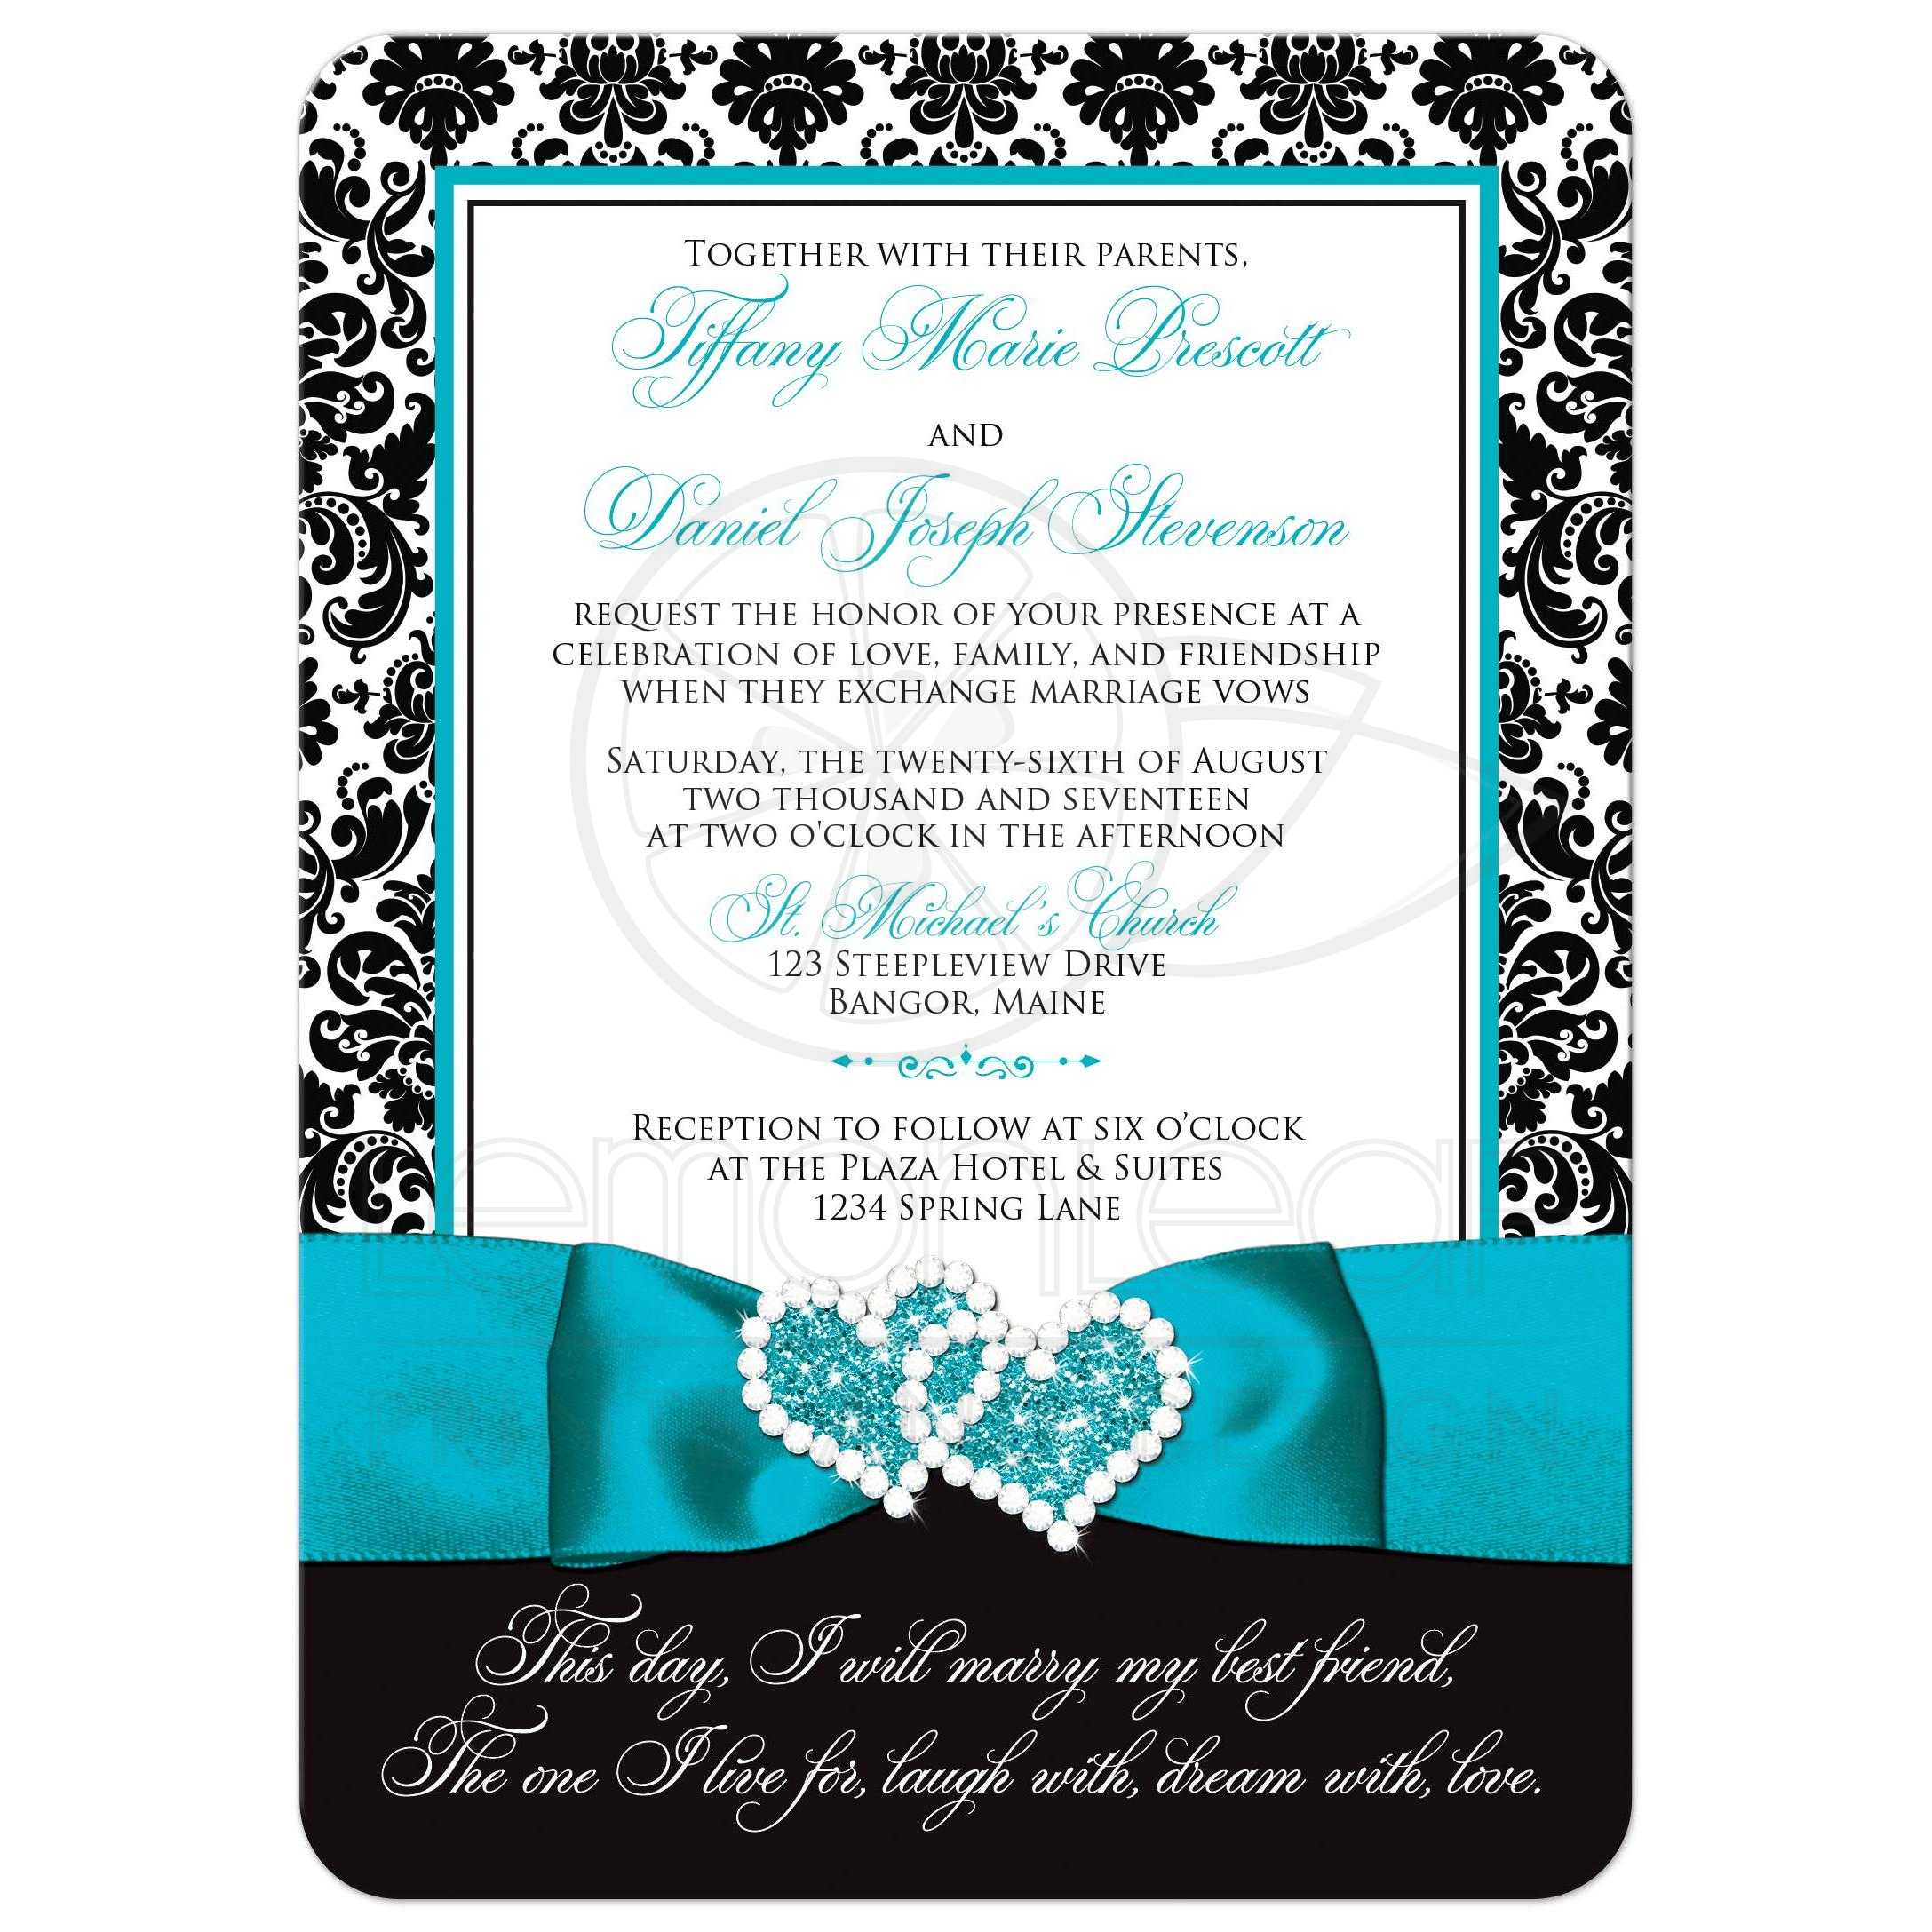 Wedding Invitation - PHOTO Optional | Black and White Damask ...